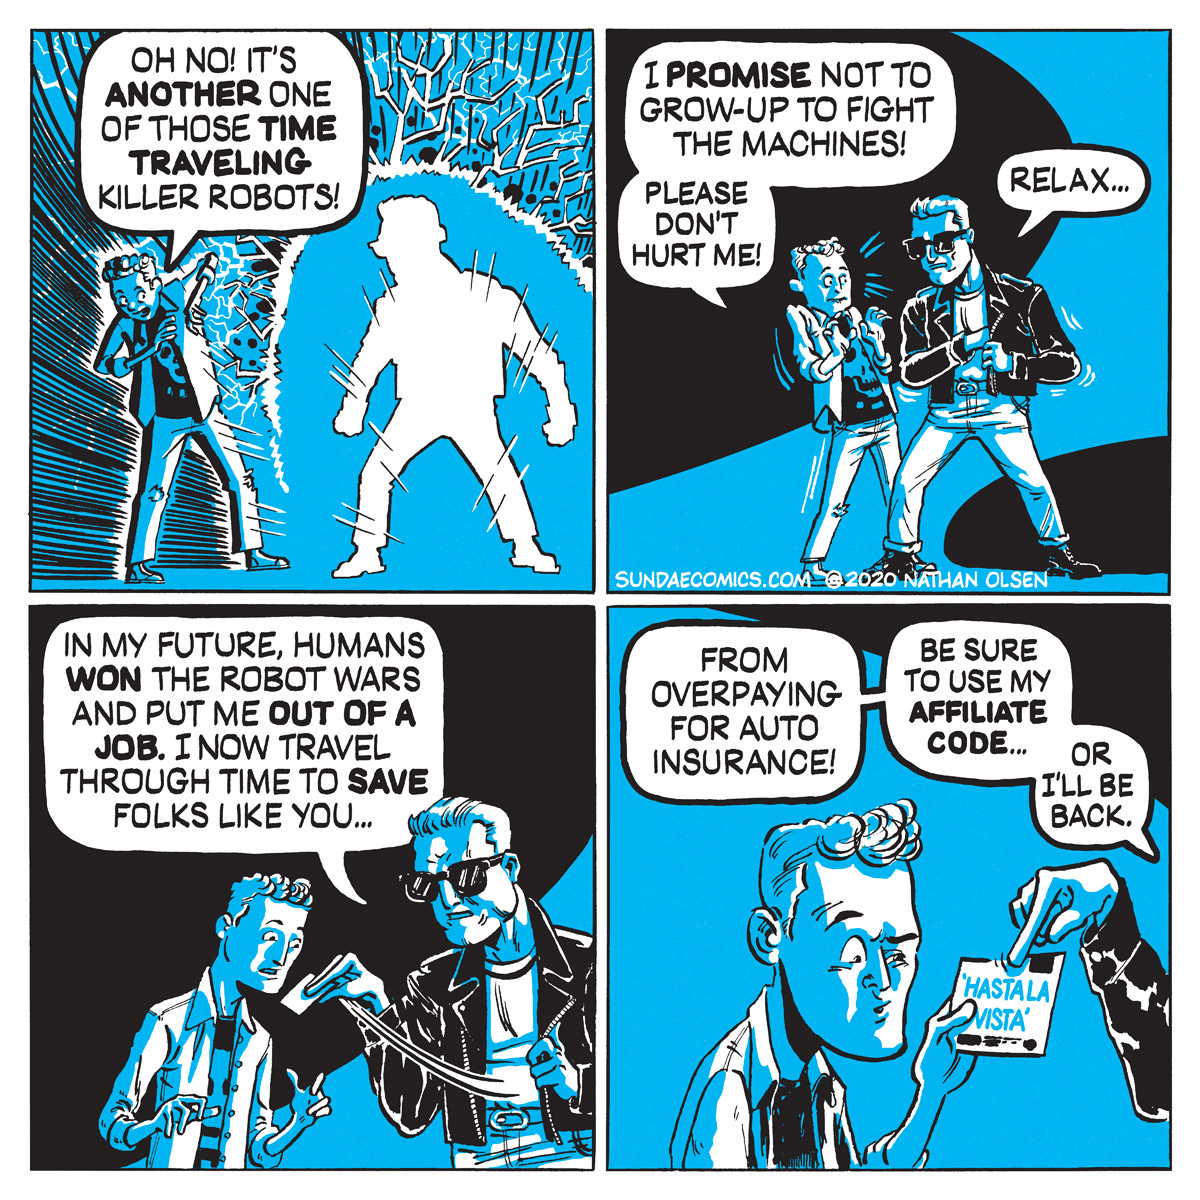 A webcomic about a murderous robot from the future with a promo code.